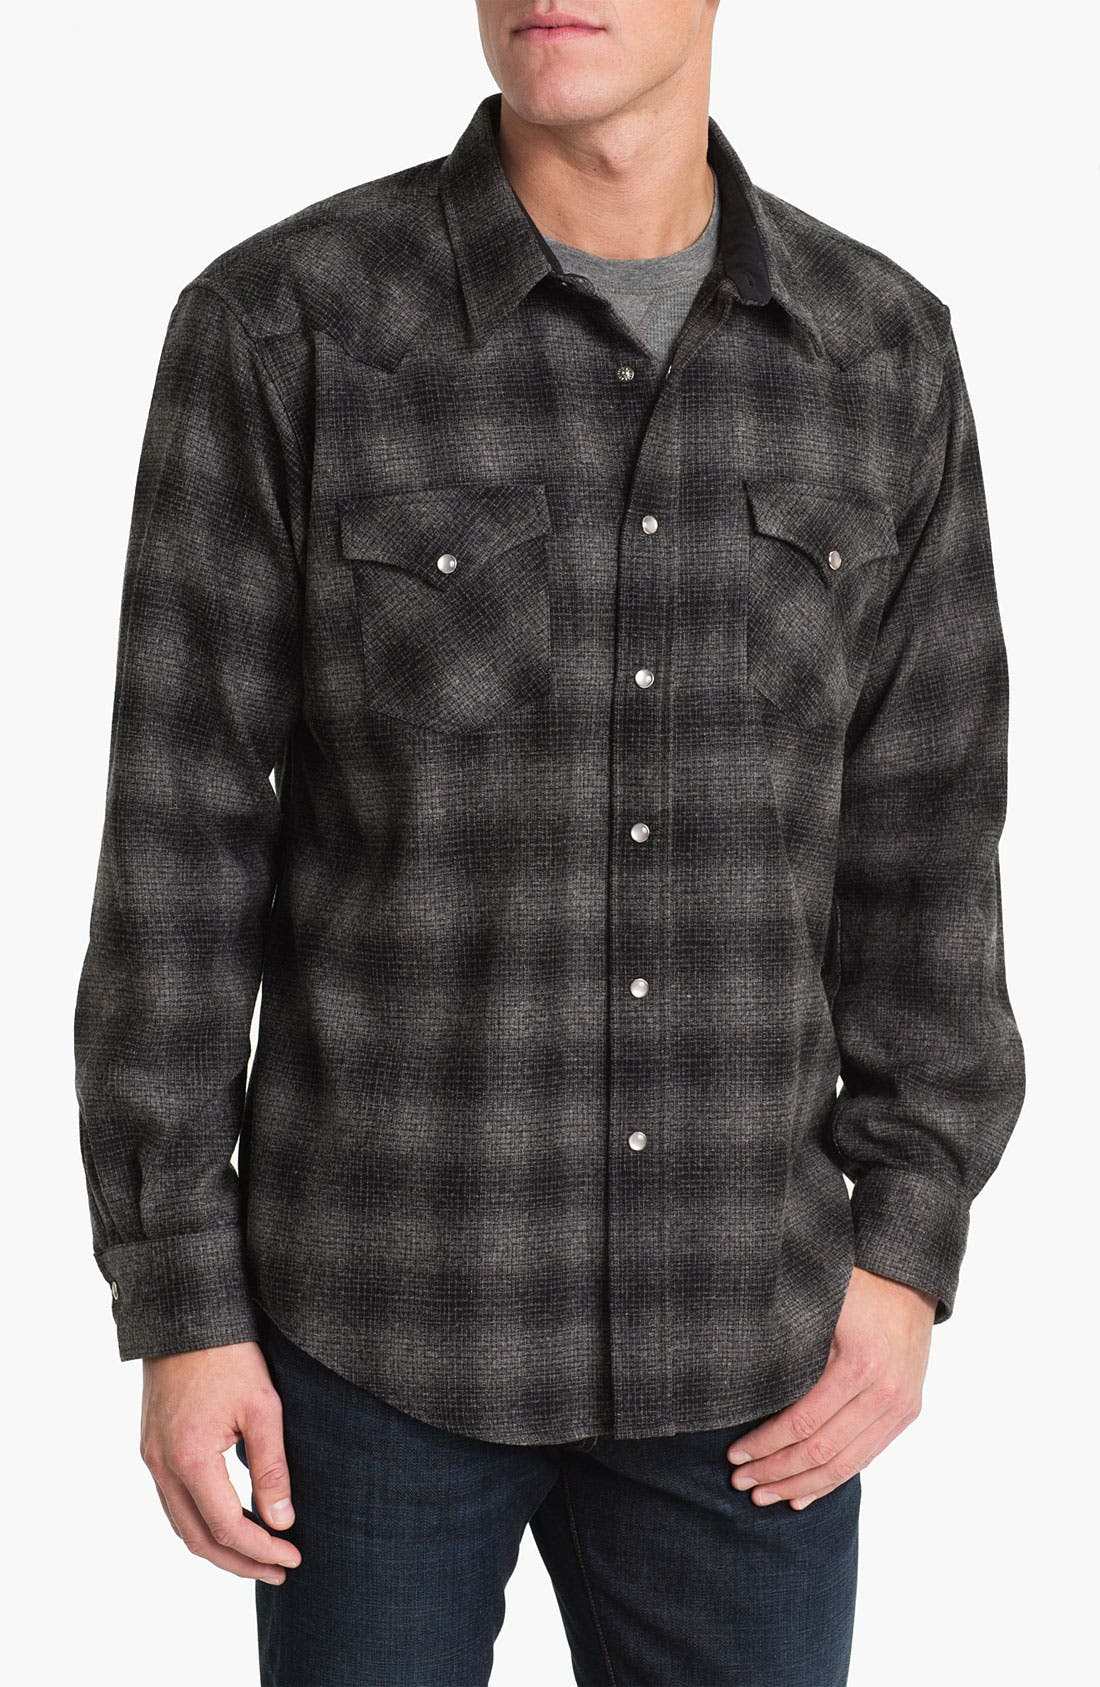 Alternate Image 1 Selected - Pendleton 'Canyon' Fitted Wool Shirt